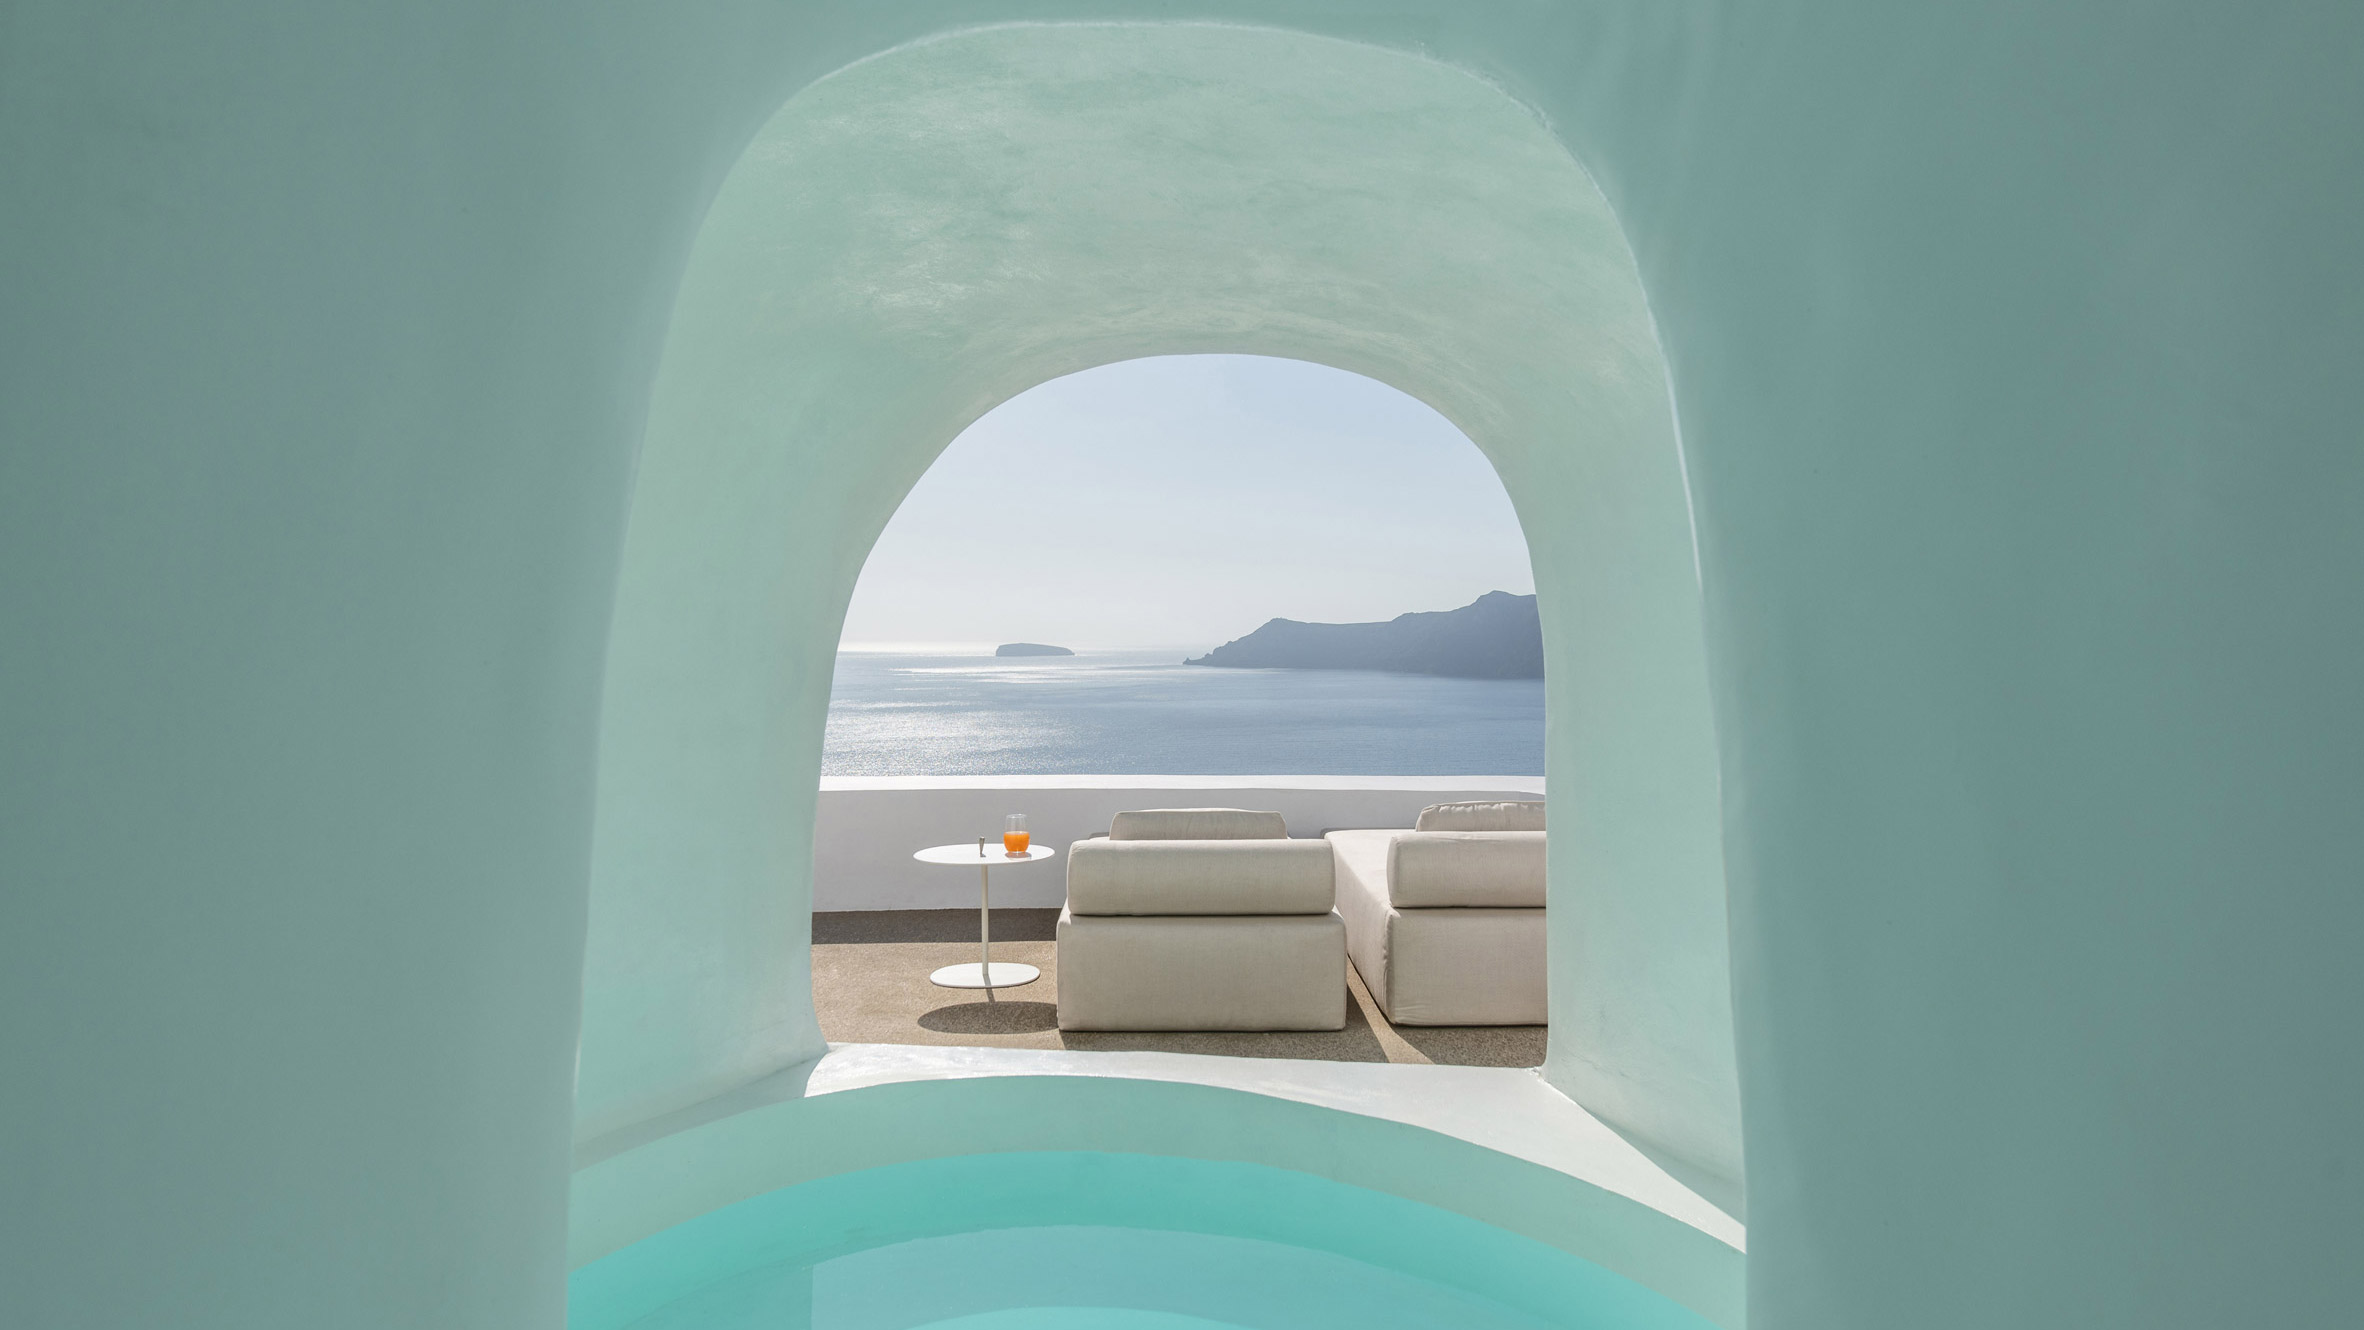 Santorini roundup by Kapsimalis Architects